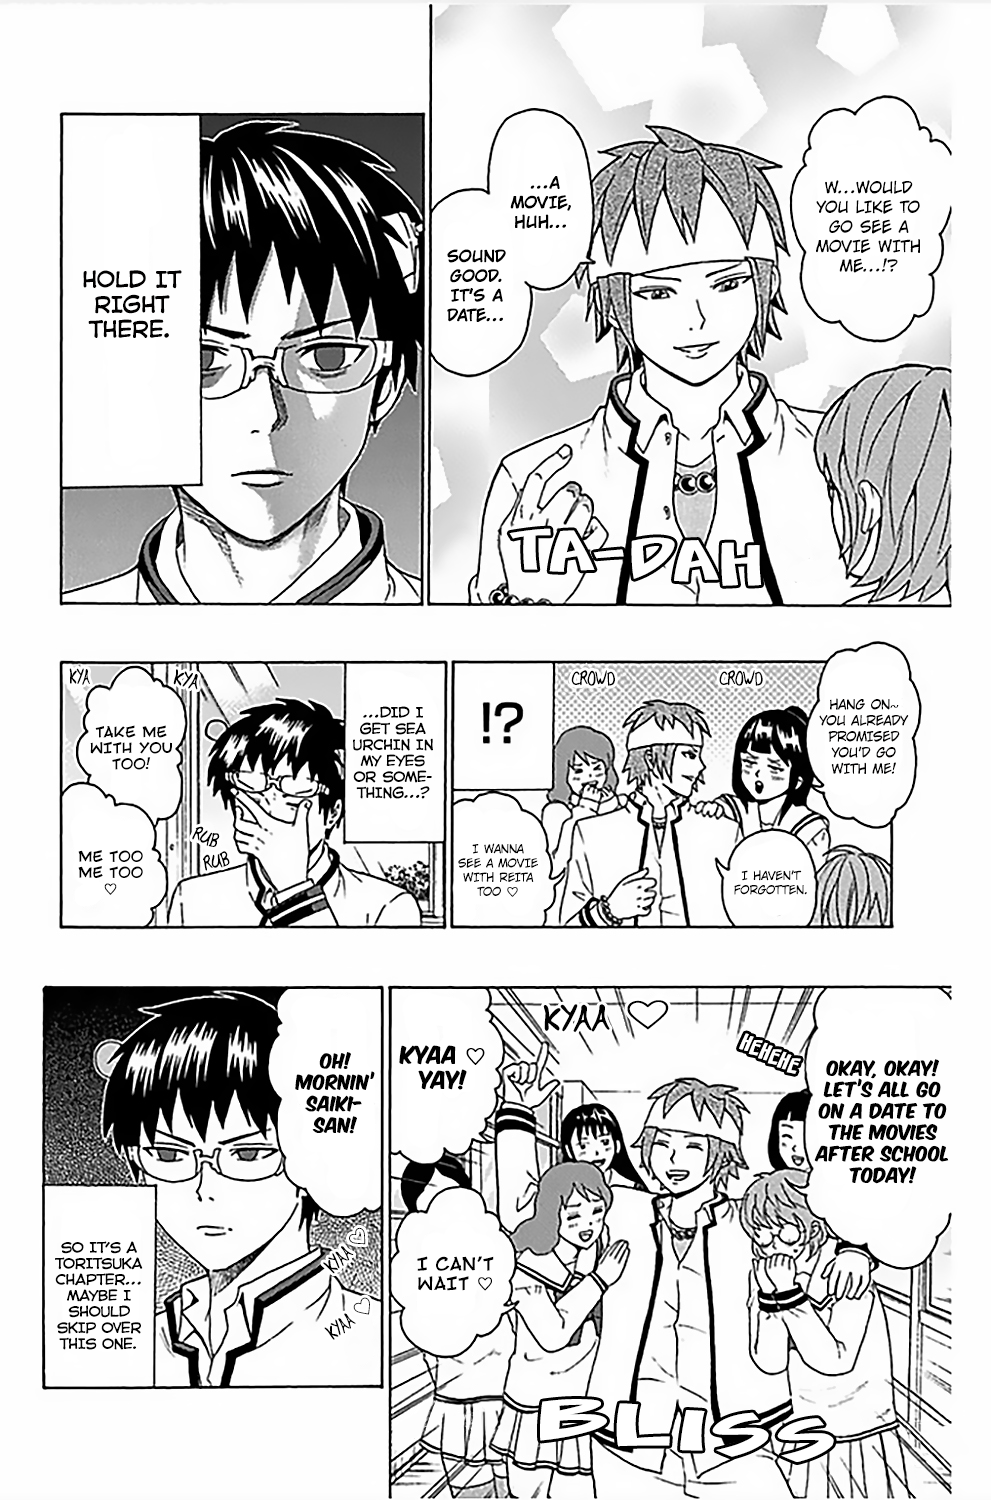 Saiki Kusuo no Psi Nan 79 : ExcerPSIze your Powers! Toritsuka's Plan to Get Popular